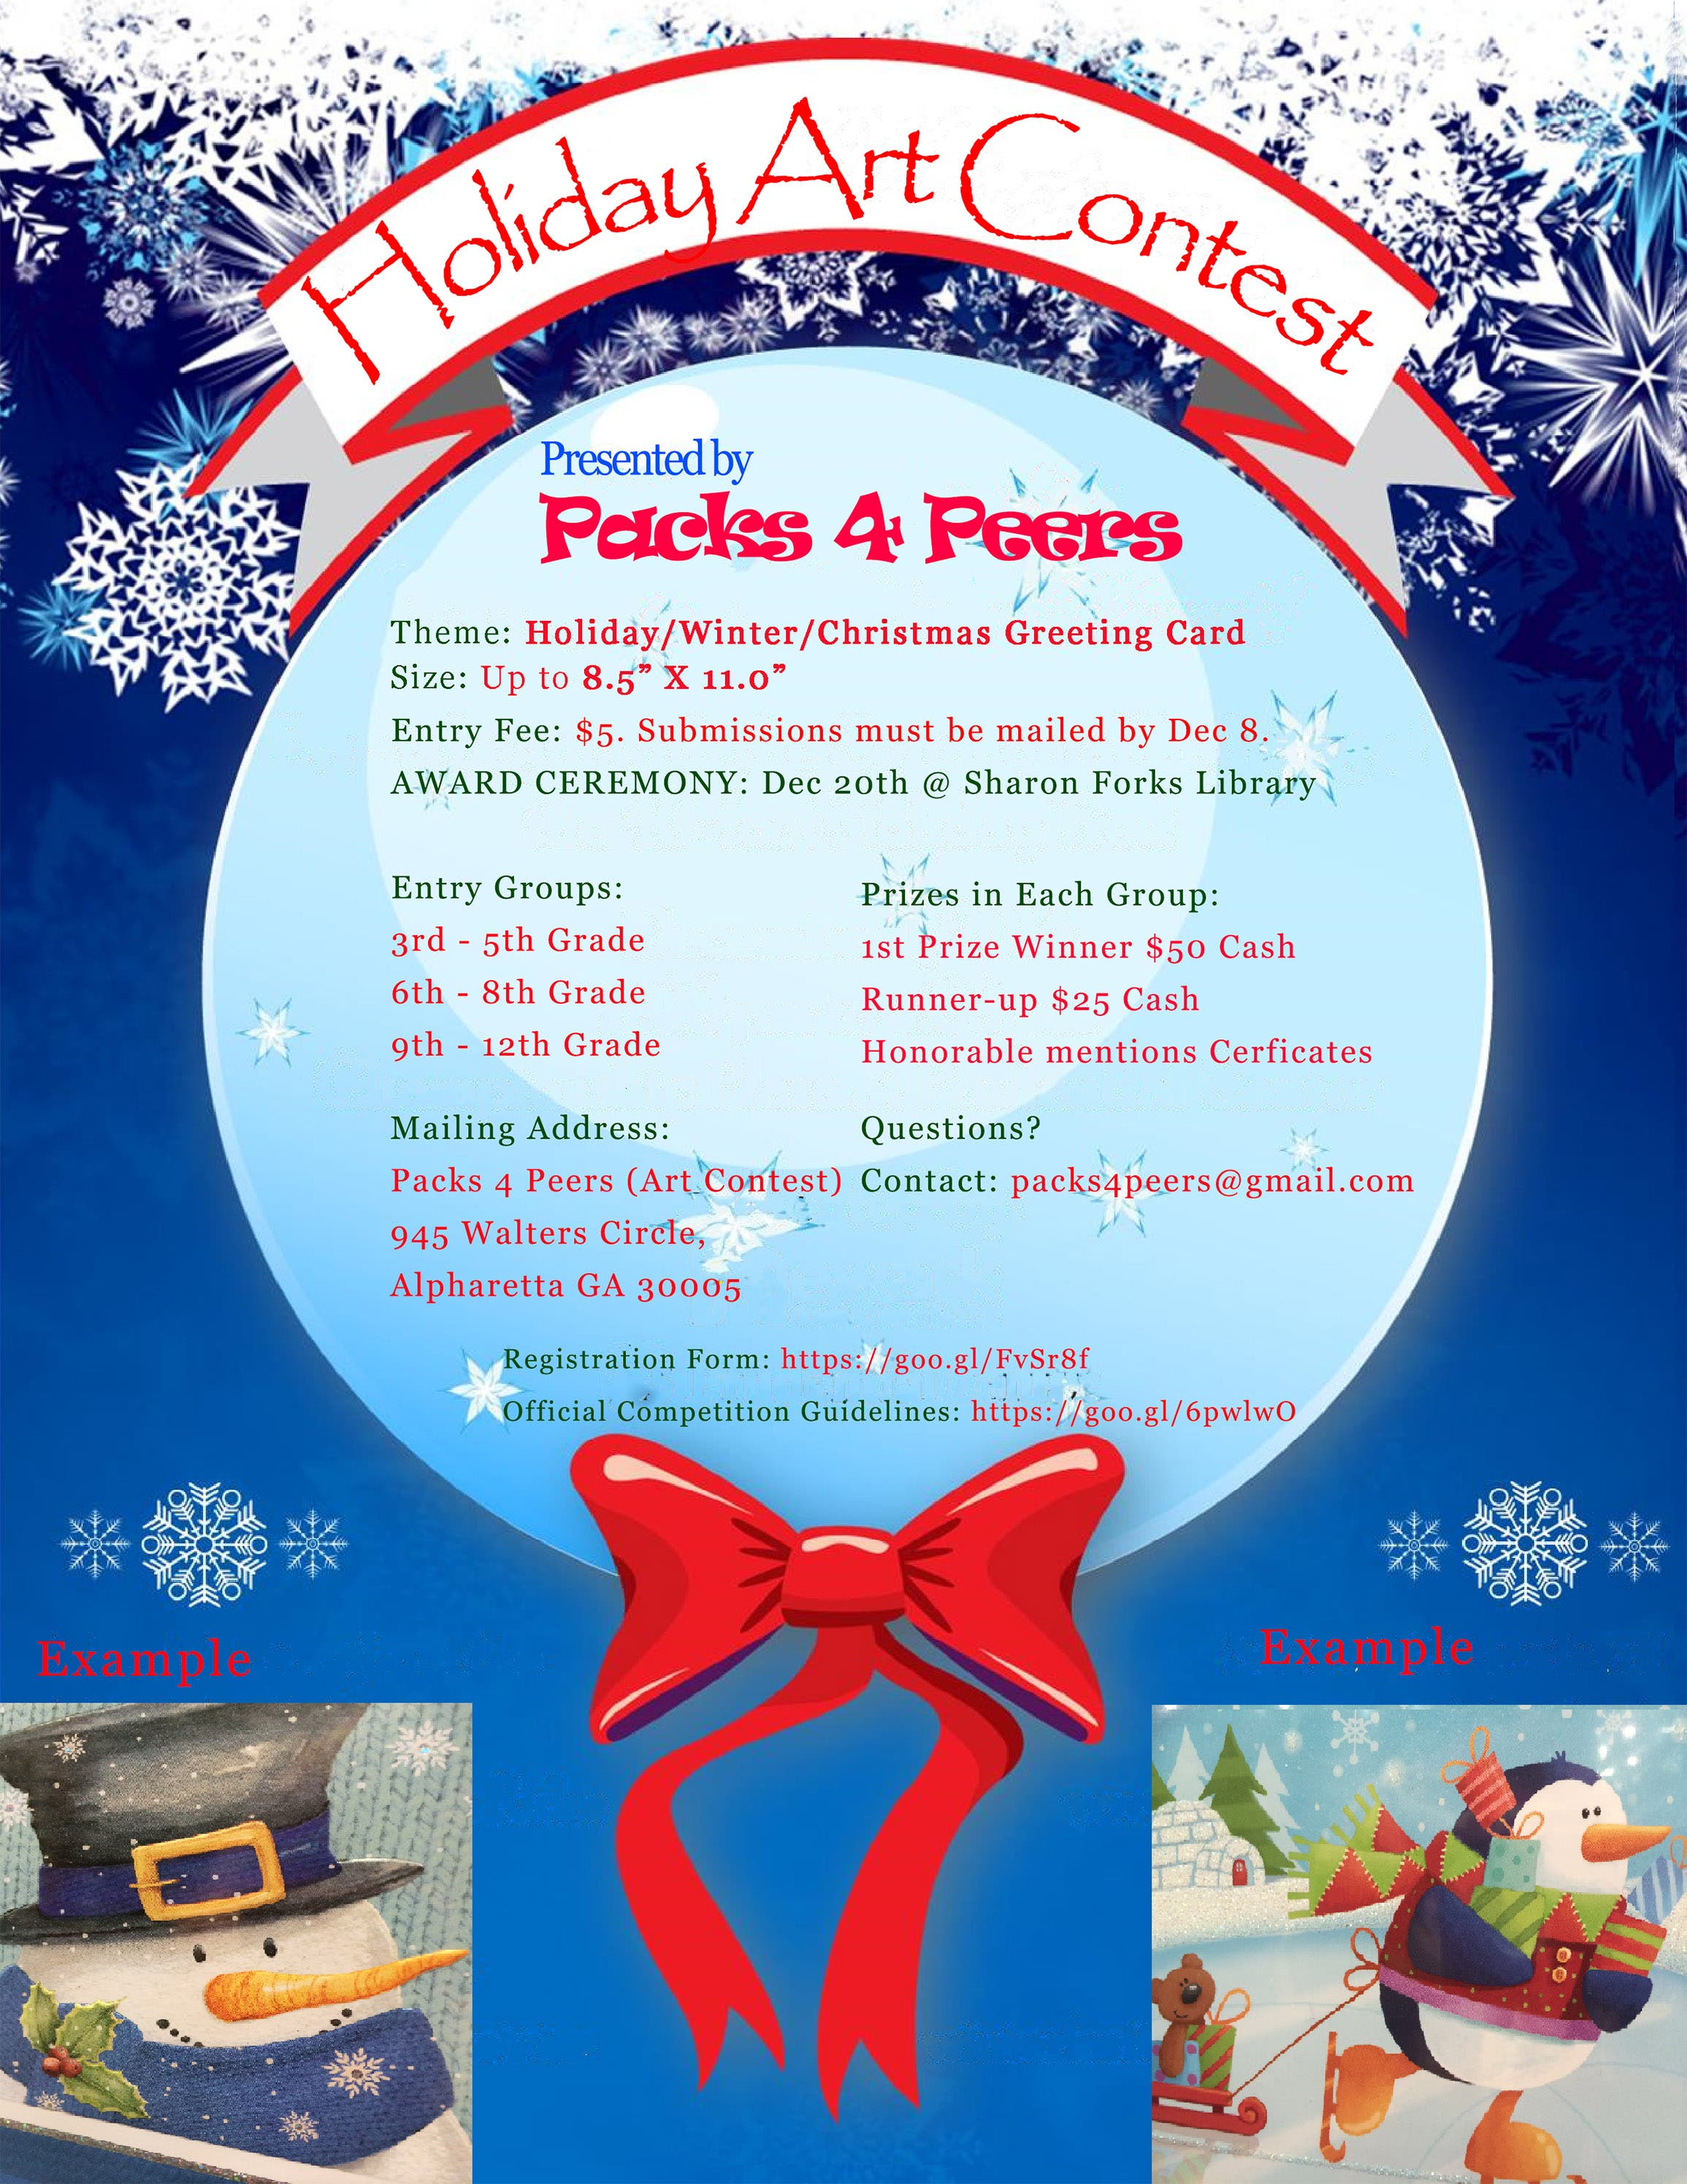 Packs 4 Peers brings Holiday Cheer by announcing a Holiday